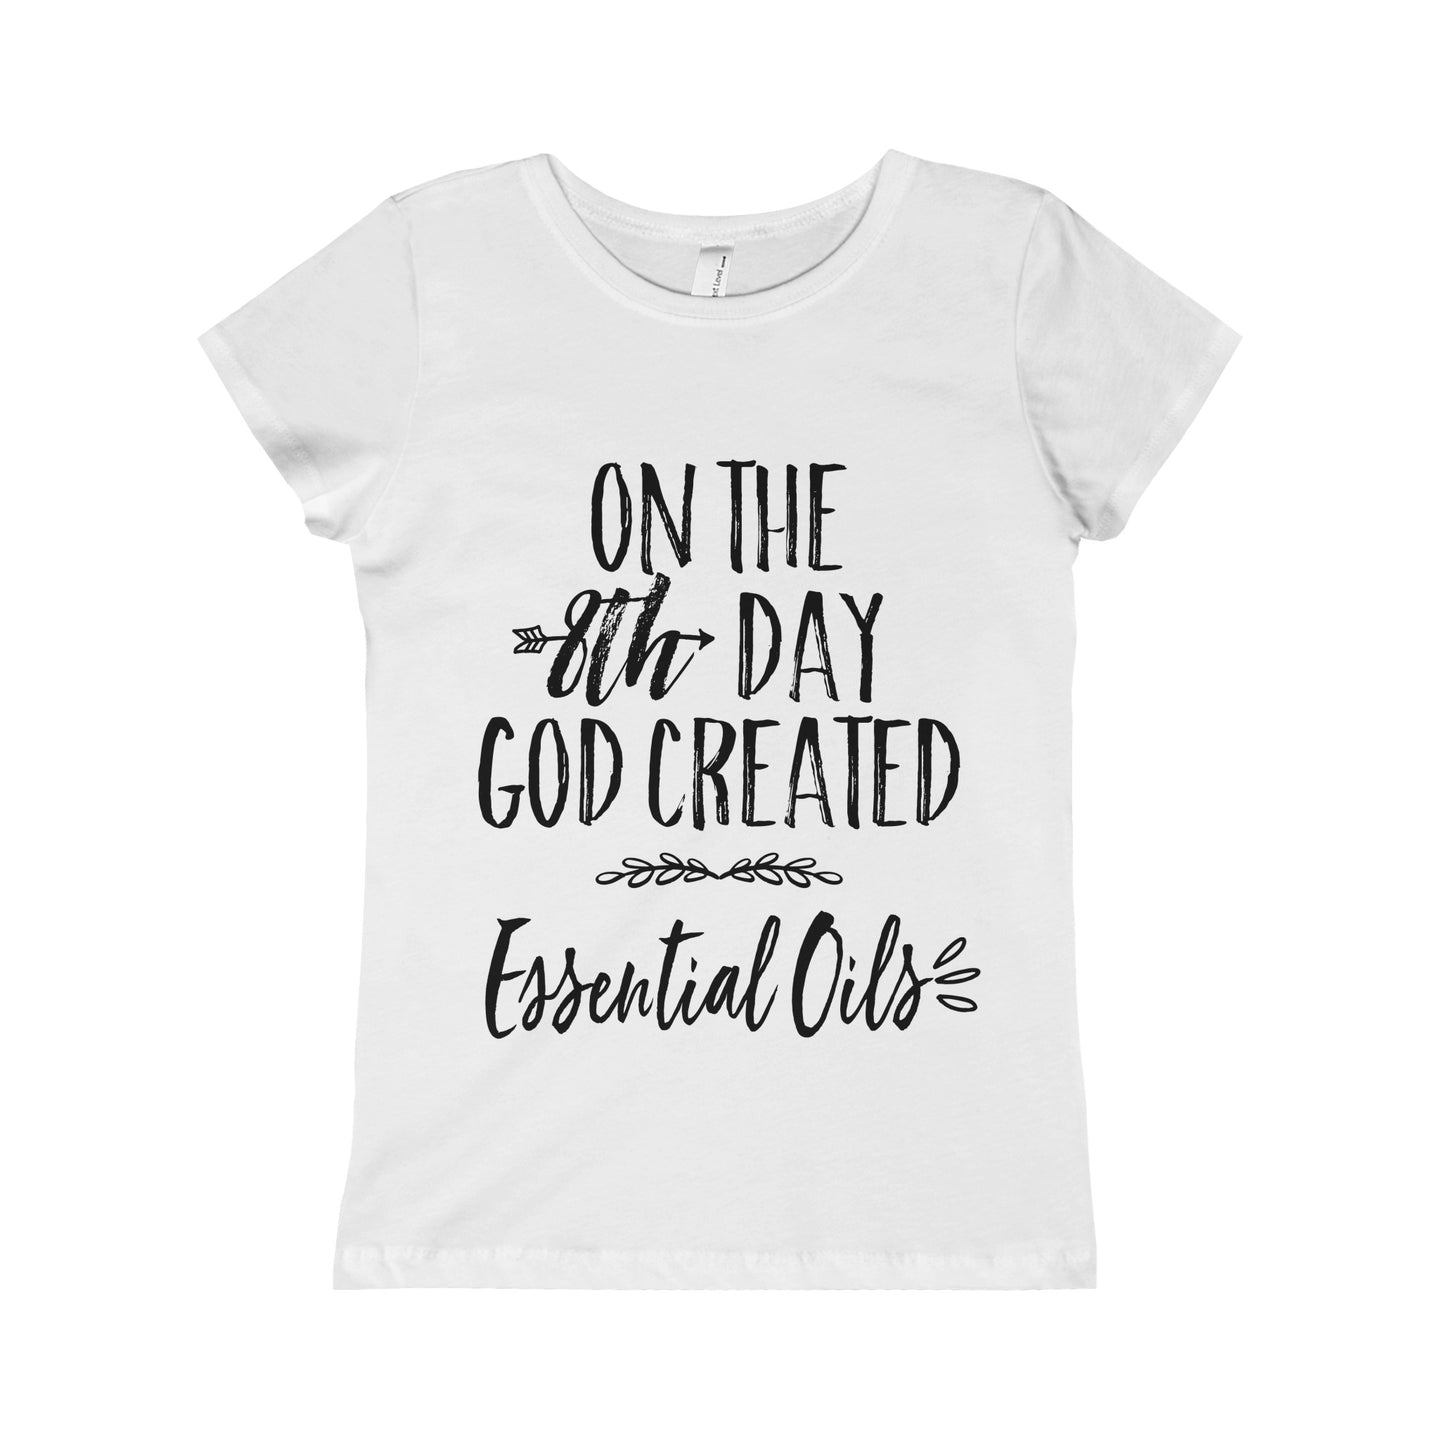 'On the 8th day God created essential oils' Youth Girls The Princess Tee